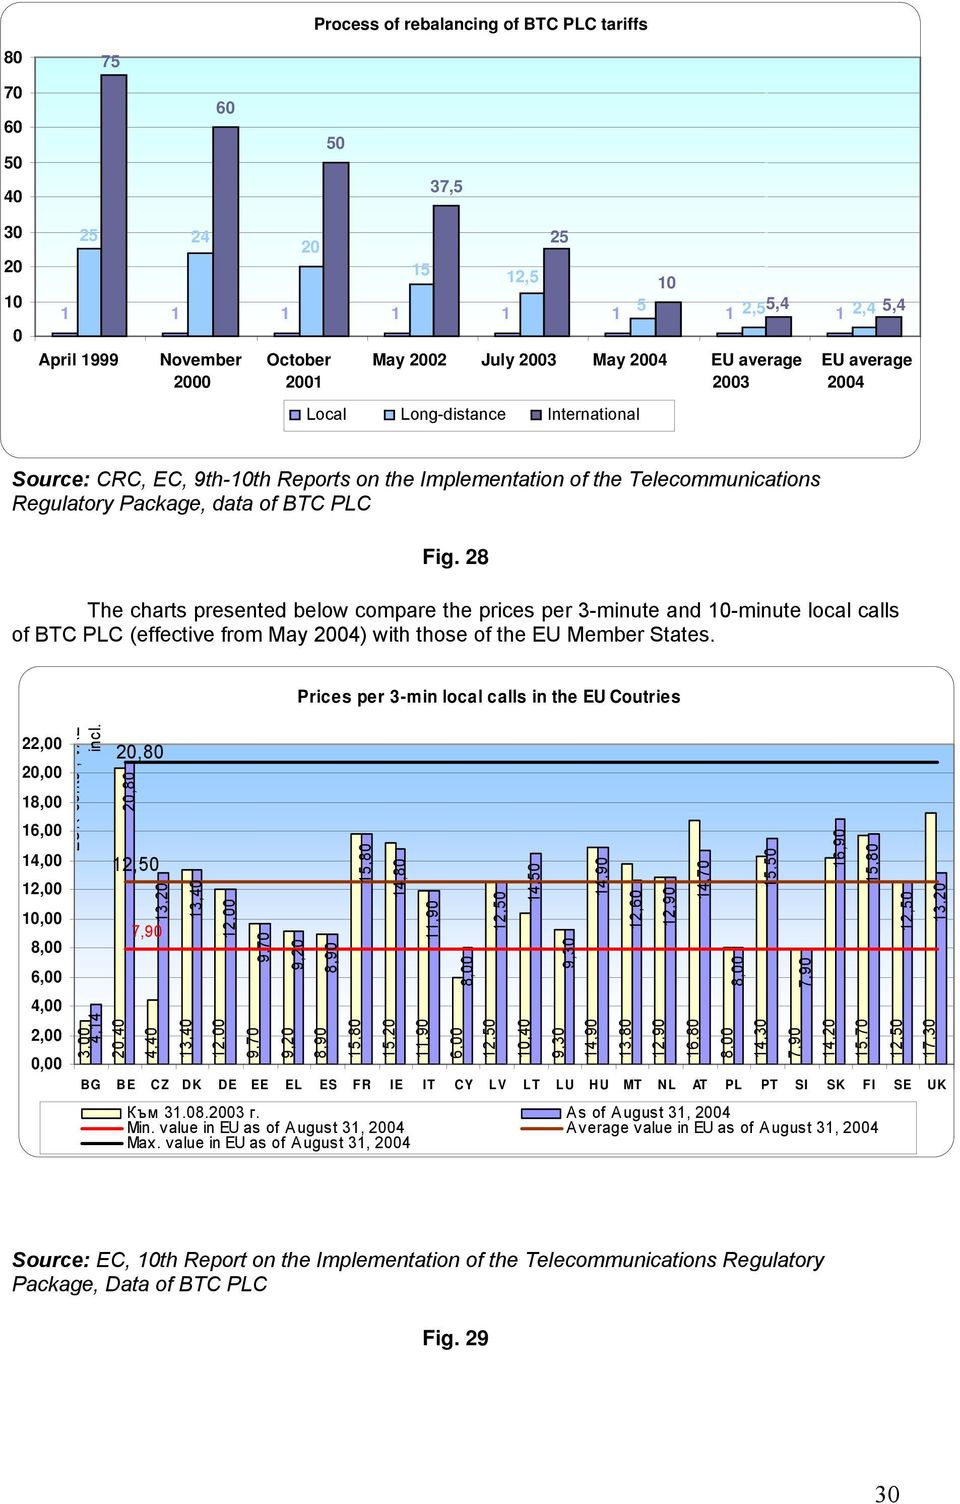 28 The charts presented below compare the prices per 3-minute and 10-minute local calls of BTC PLC (effective from May 2004) with those of the EU Member States.